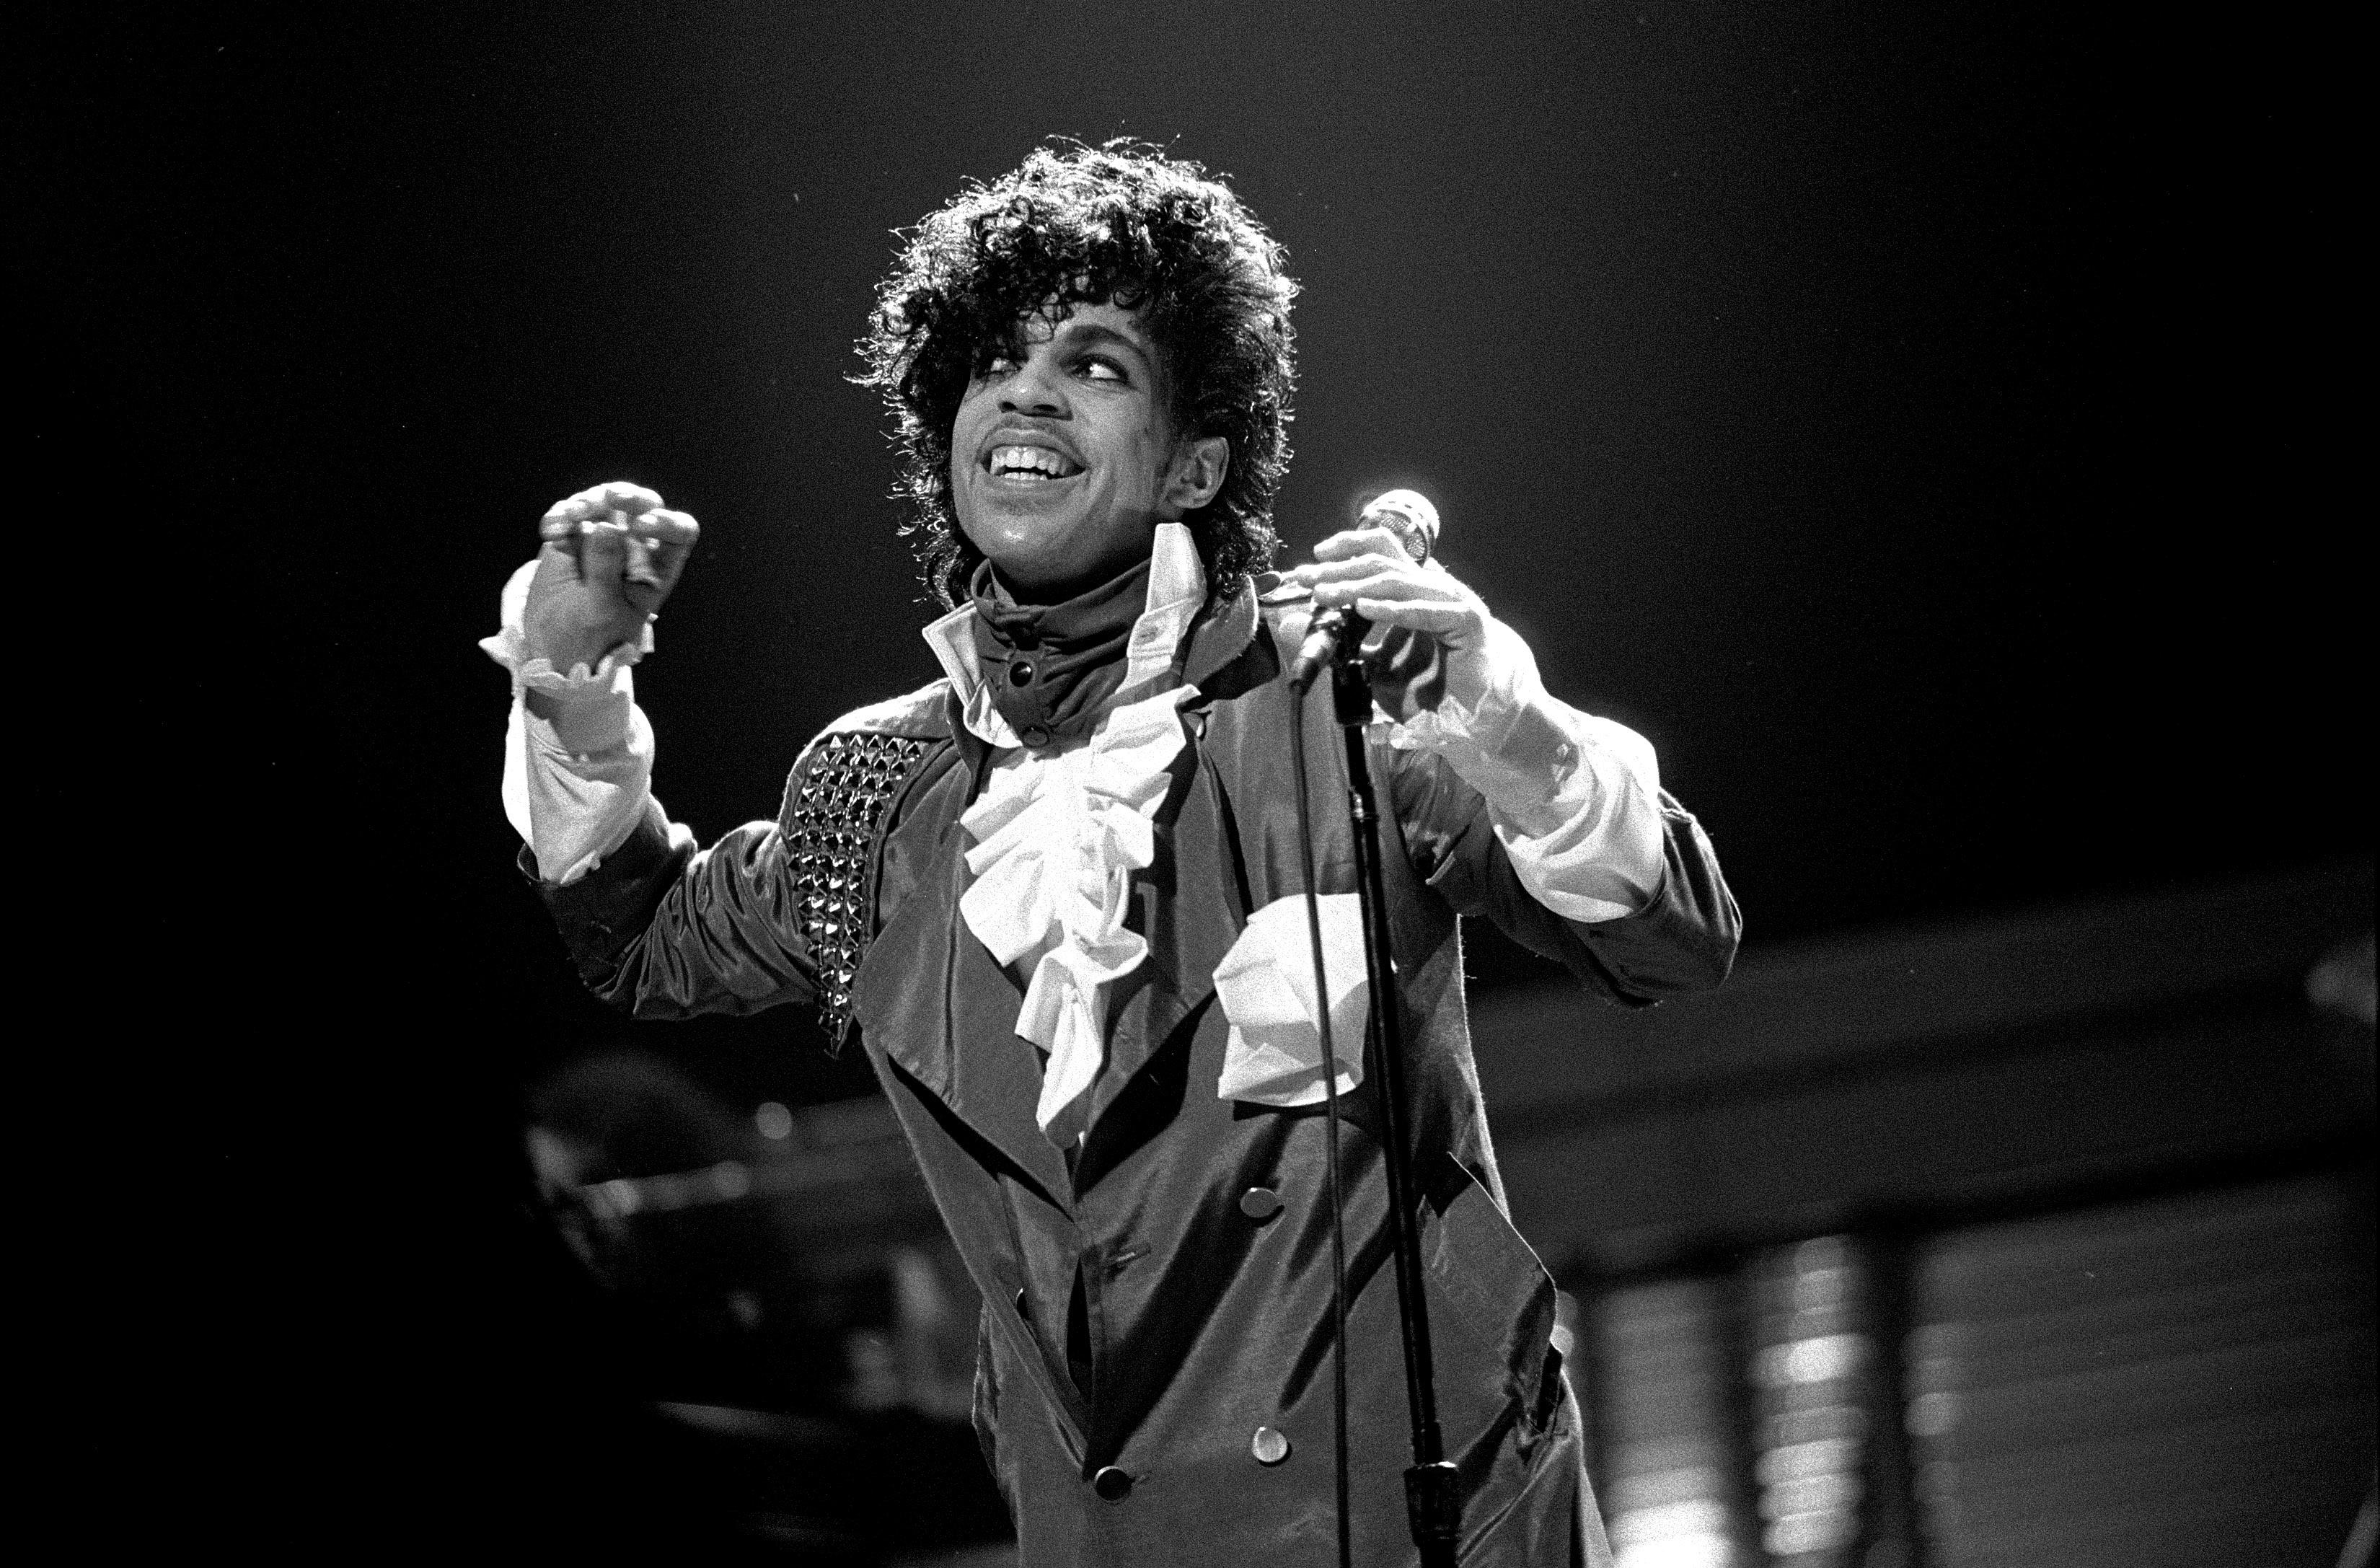 Prince Hd Wallpaper Background Image 3300x2174 Id